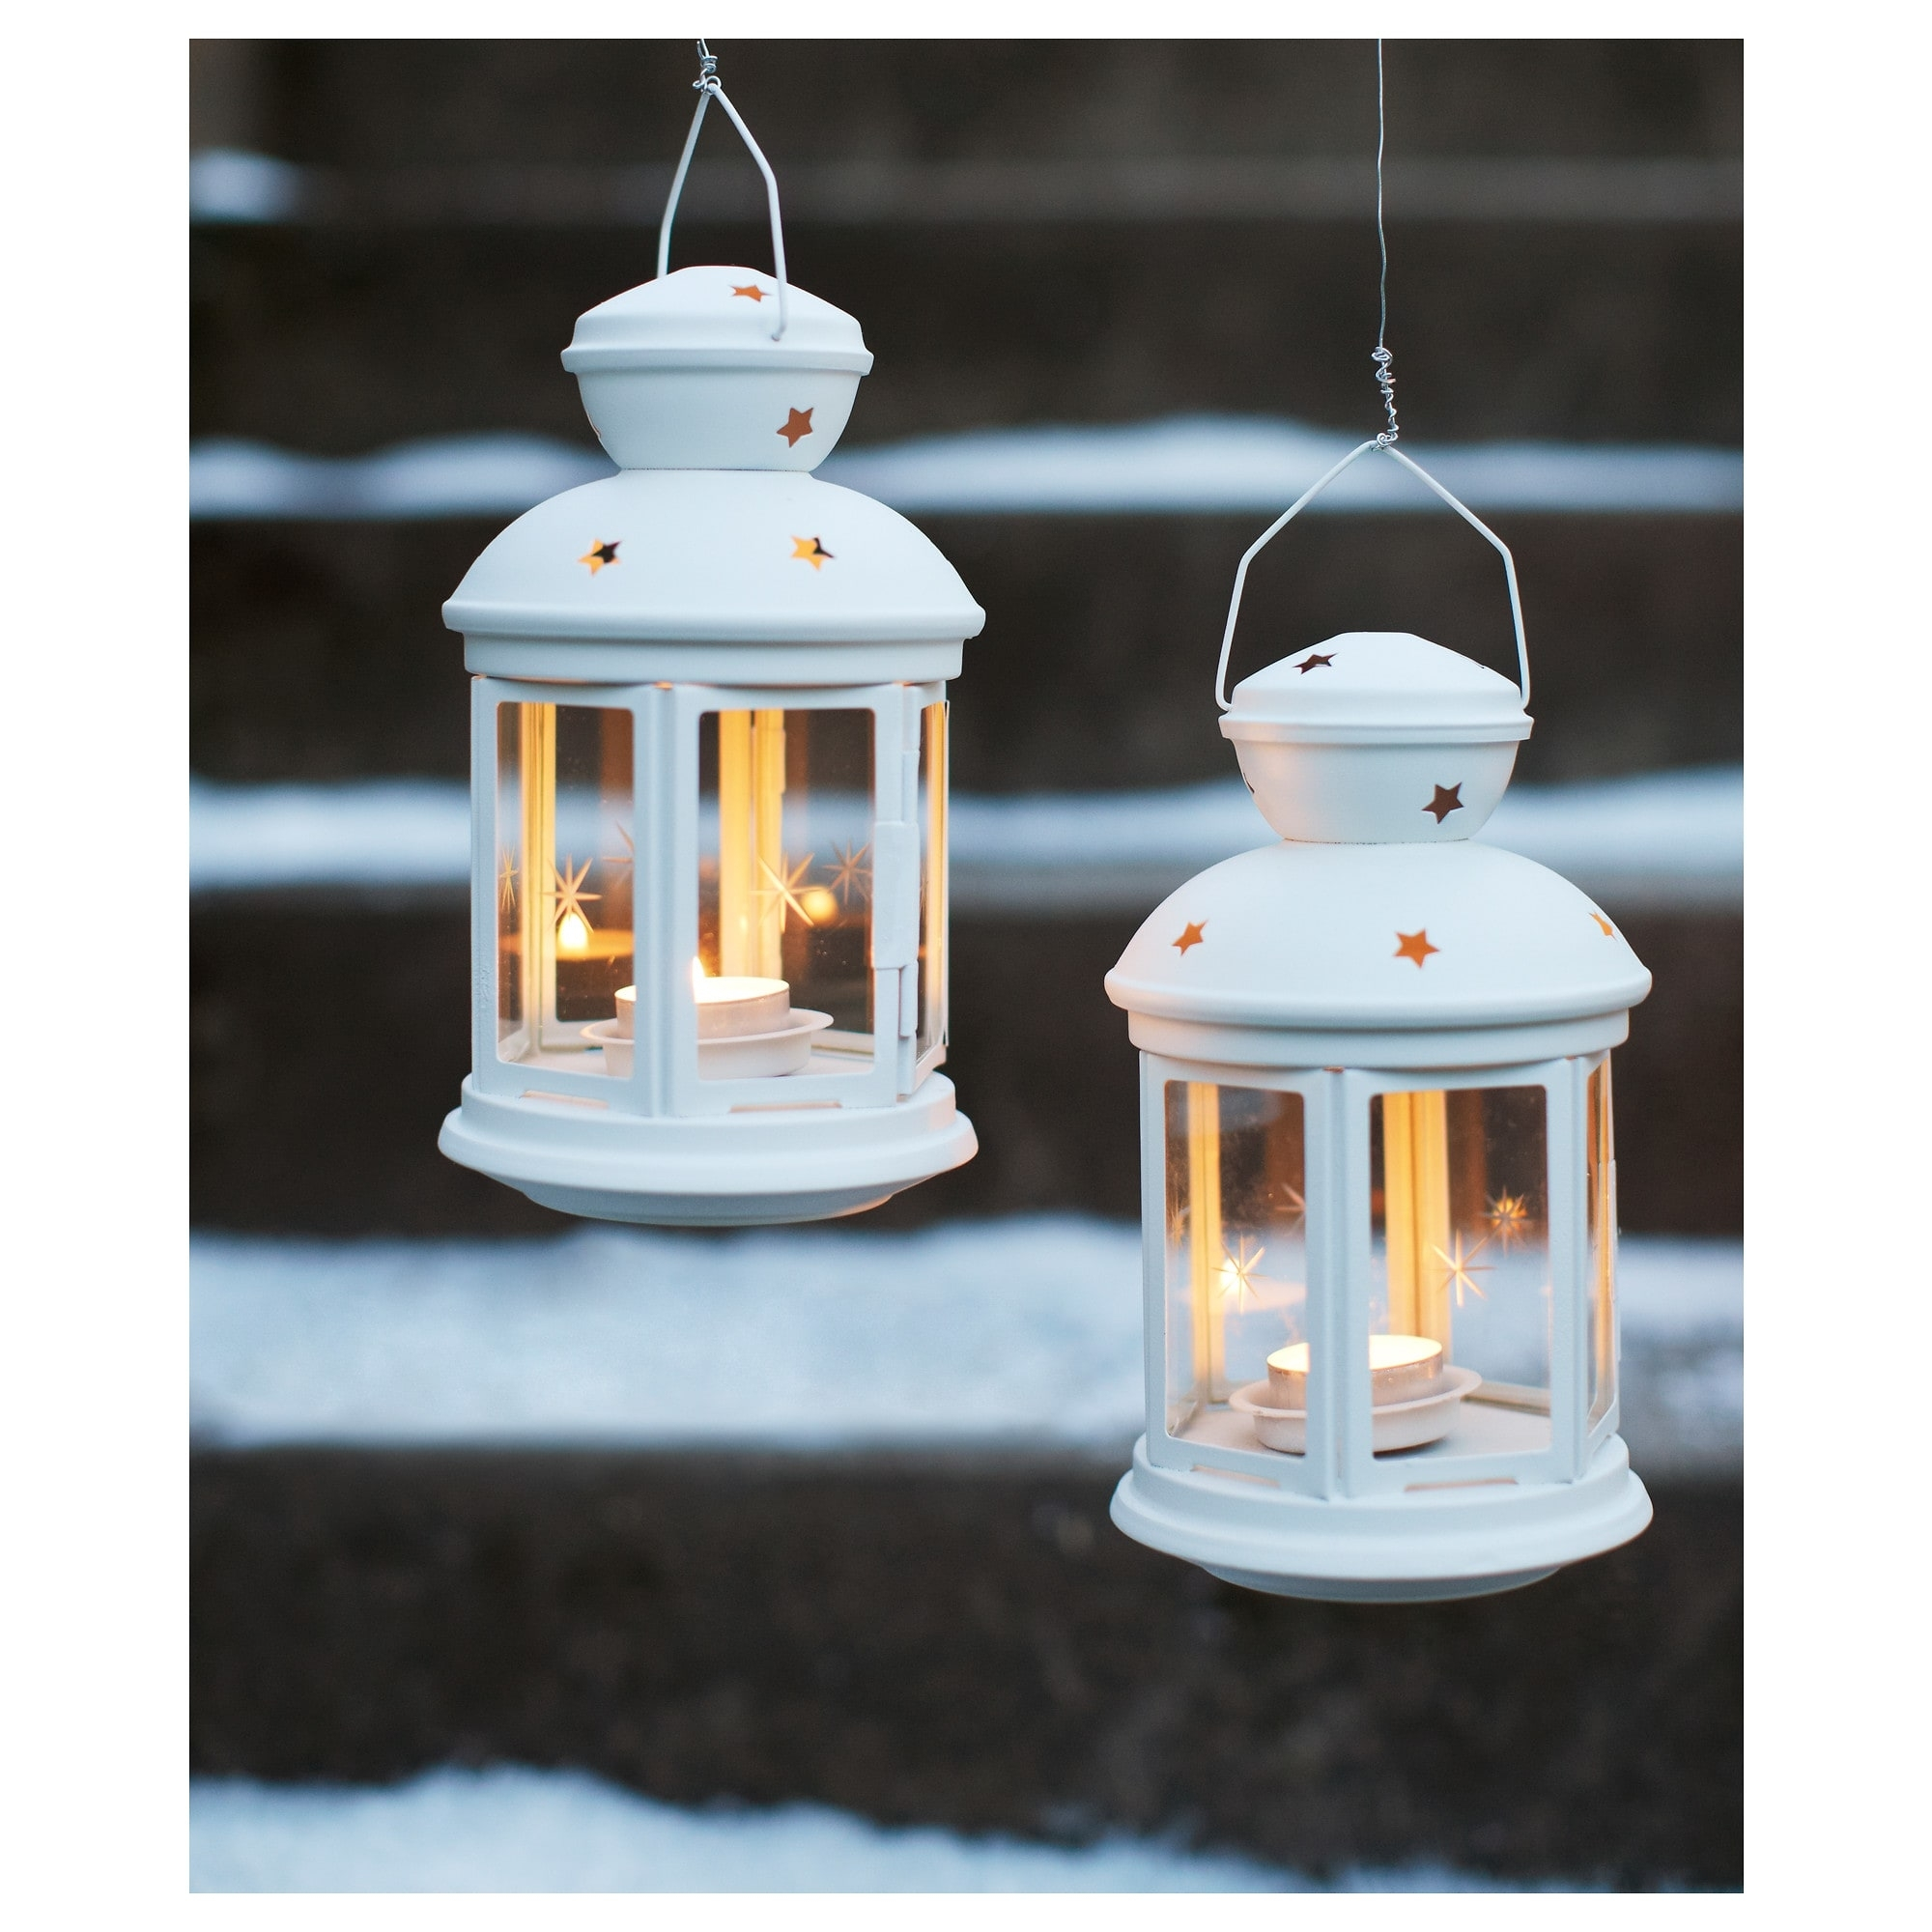 Rotera Lantern For Tealight In/outdoor White 21 Cm - Ikea pertaining to Outdoor Tea Light Lanterns (Image 14 of 20)